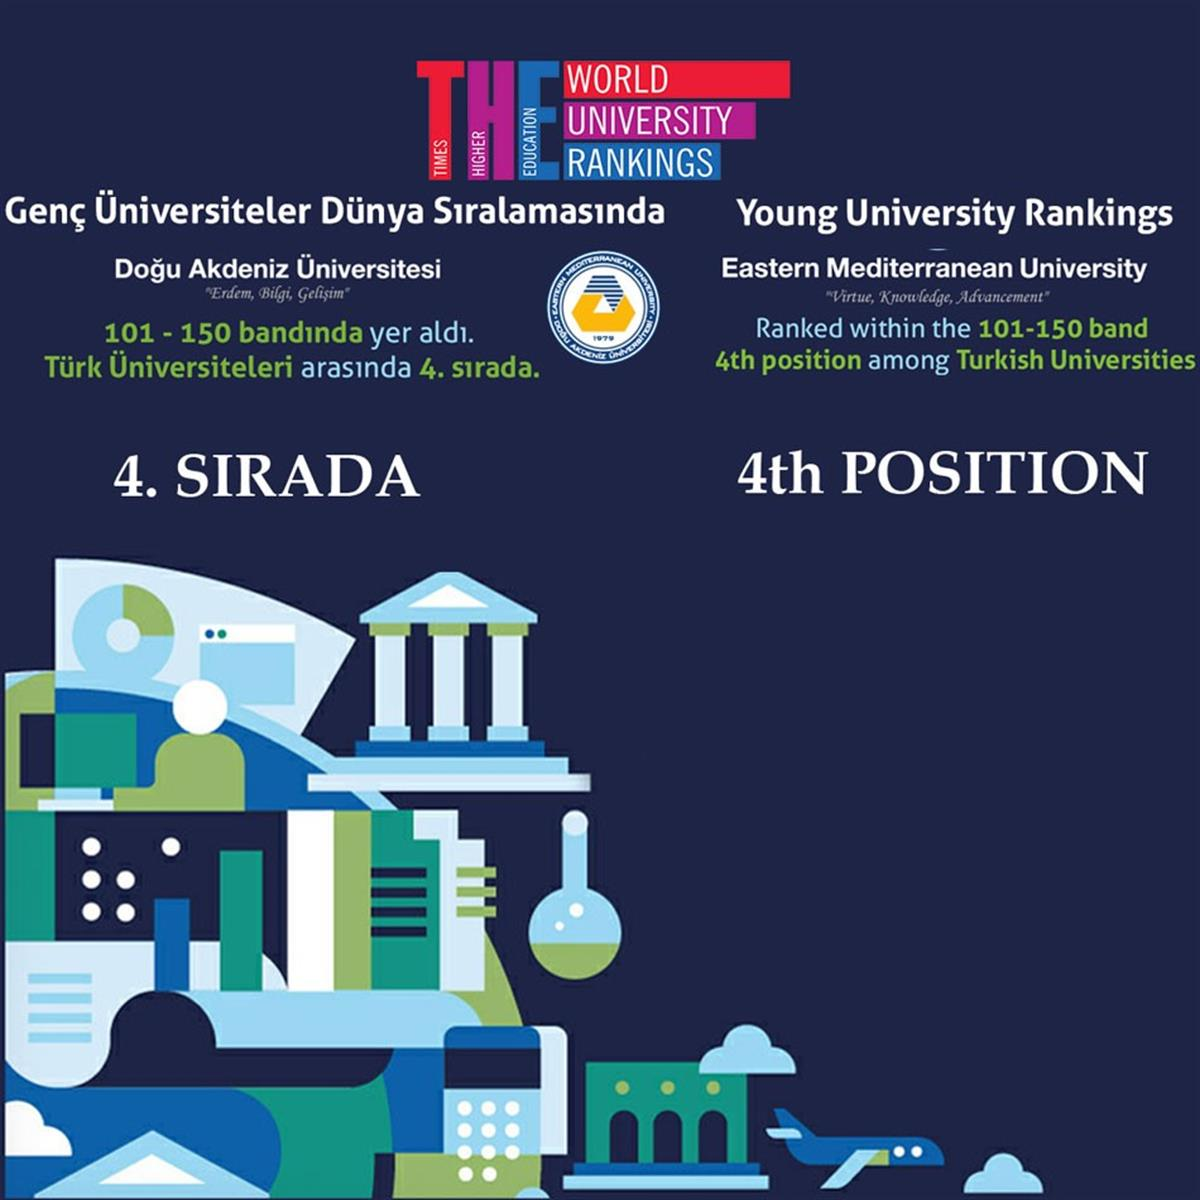 Young University Rankings Eastern Mediterranean University Ranked within the 101-150 band 4th position among Turkish Universities.